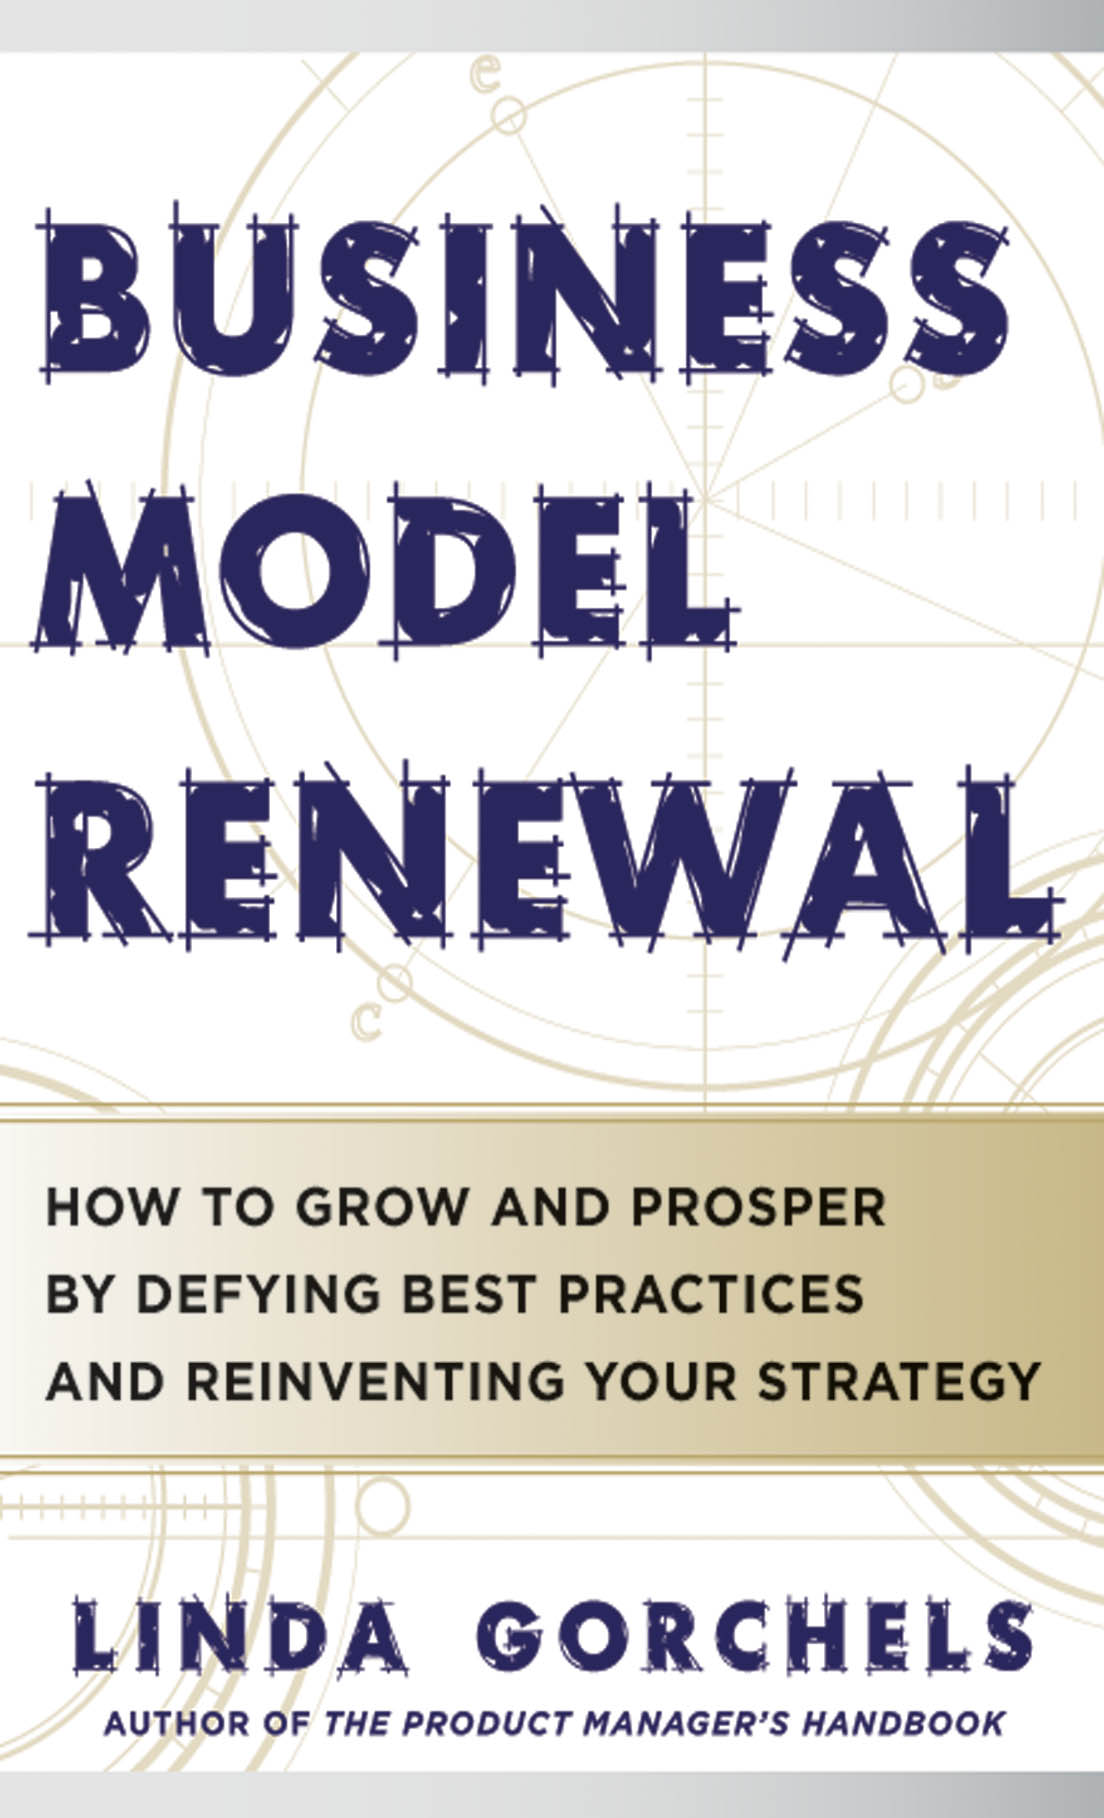 Download Ebook Business Model Renewal: How to Grow and Prosper by Defying Best Practices and Reinventing Your Strategy by Linda Gorchels Pdf